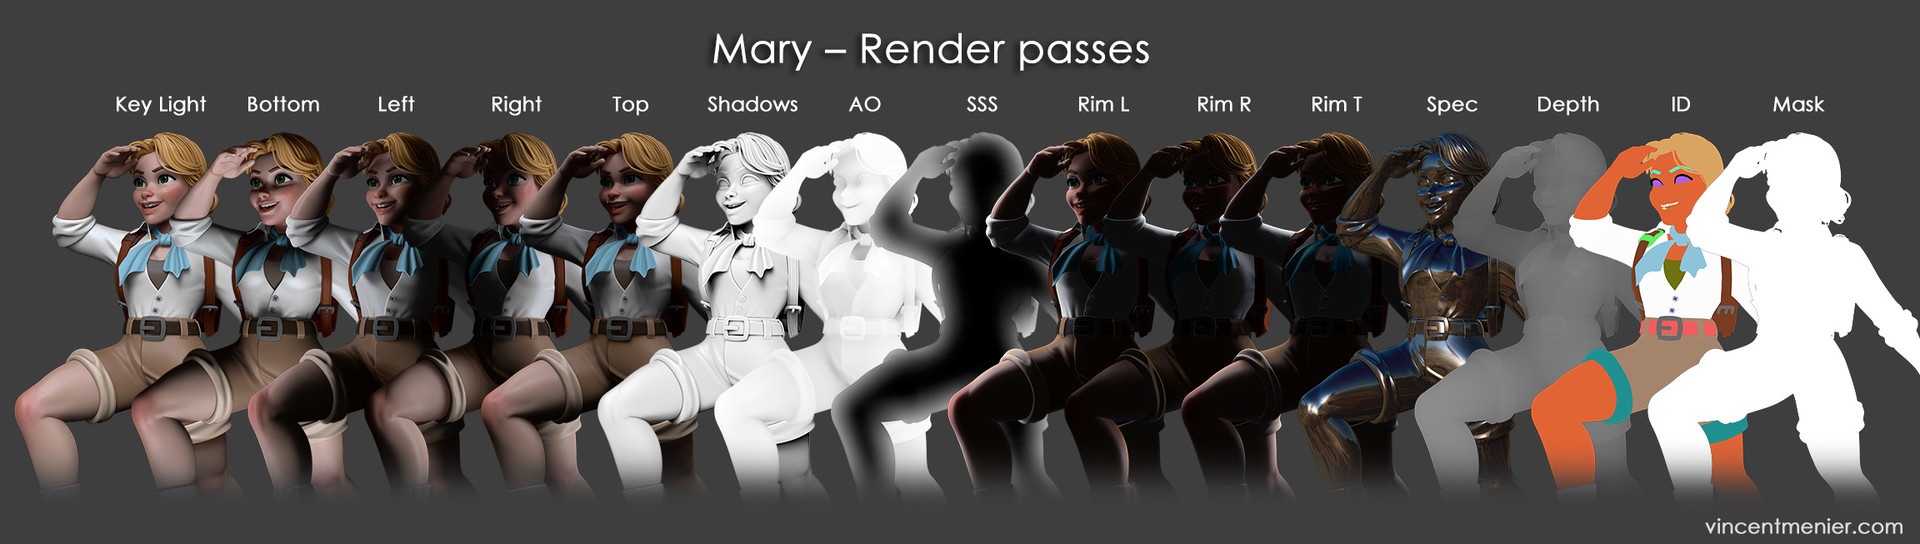 Render passes generated in ZBrush